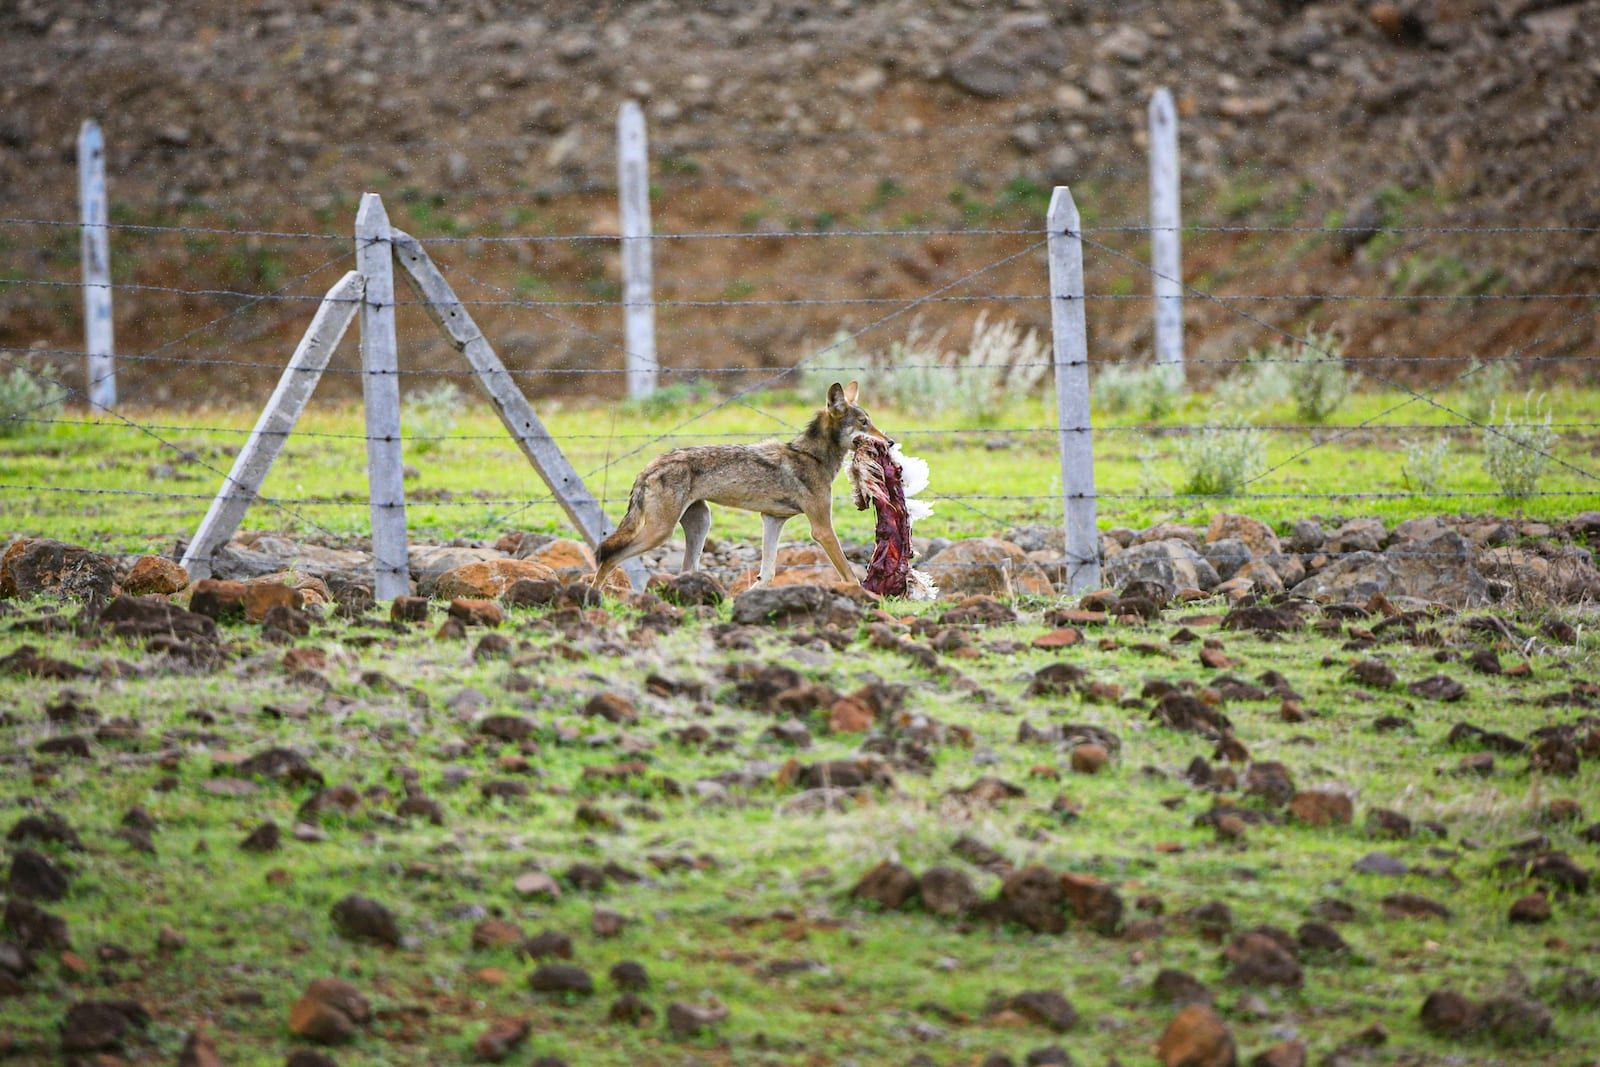 A wolf feeds on poultry waste dumped by farm owners on the Deccan grasslands in Maharashtra. Livestock is a major part of the diet of the wolves, which live near humans. Photo: Mihir Godbole/ The Grasslands Trust